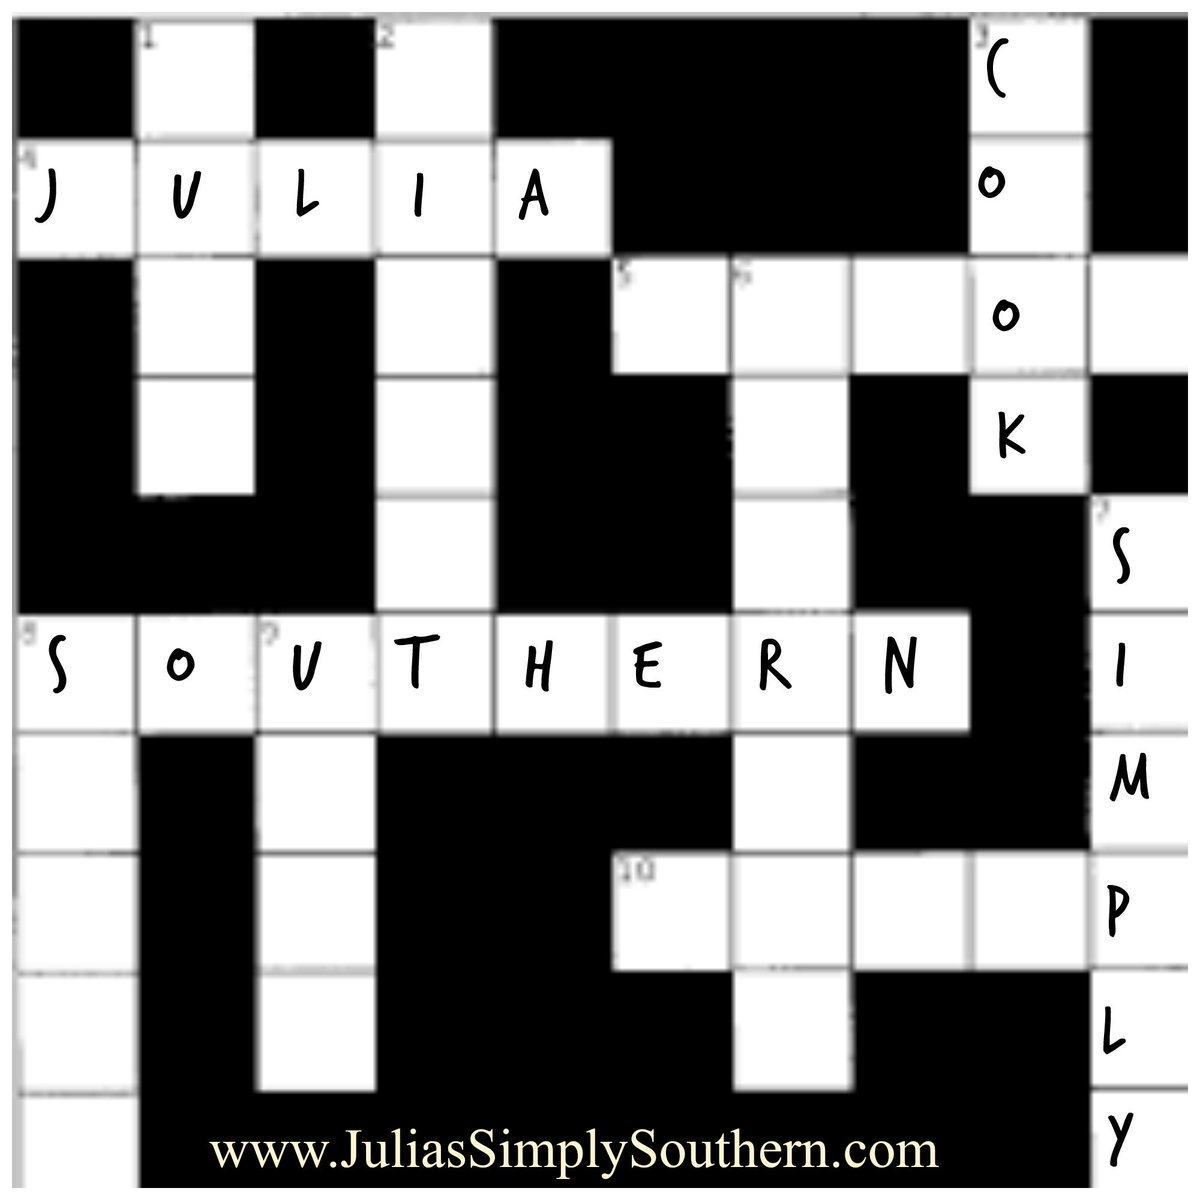 Are you a fan of crossword puzzles? It's #crosswordpuzzleday ✏️